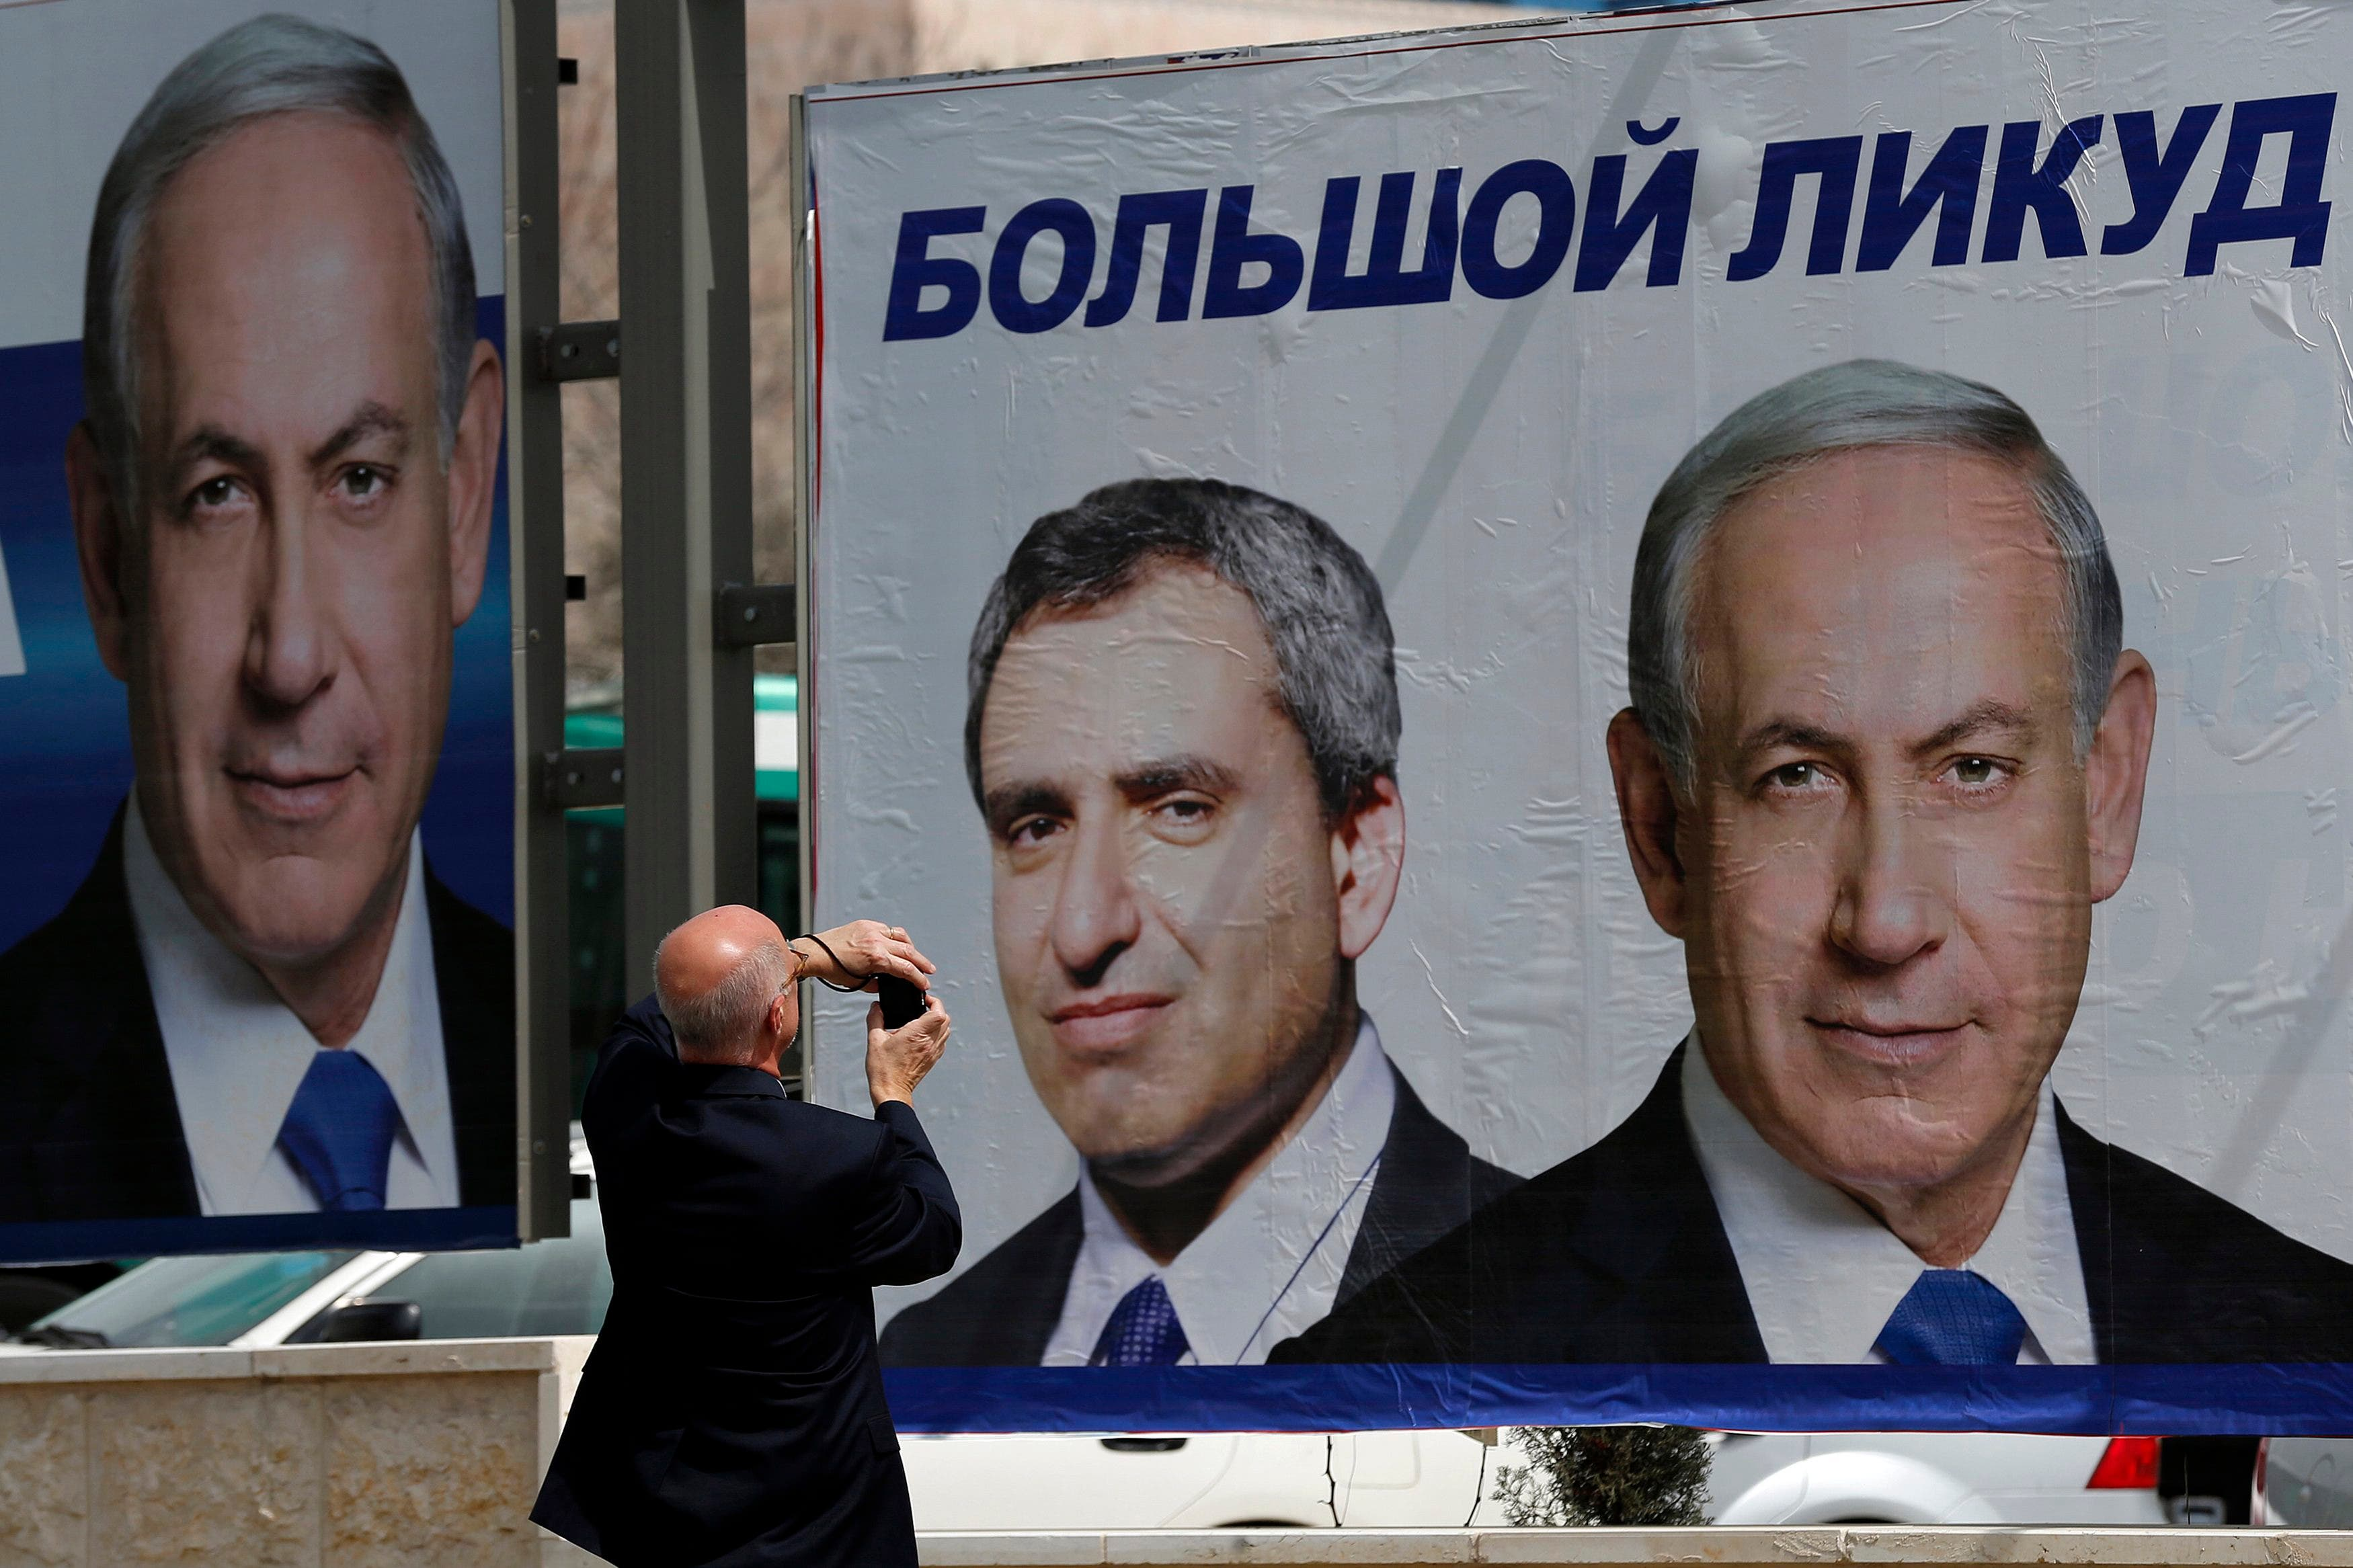 As Israeli election nears, peace earns barely a mention (Reuters)